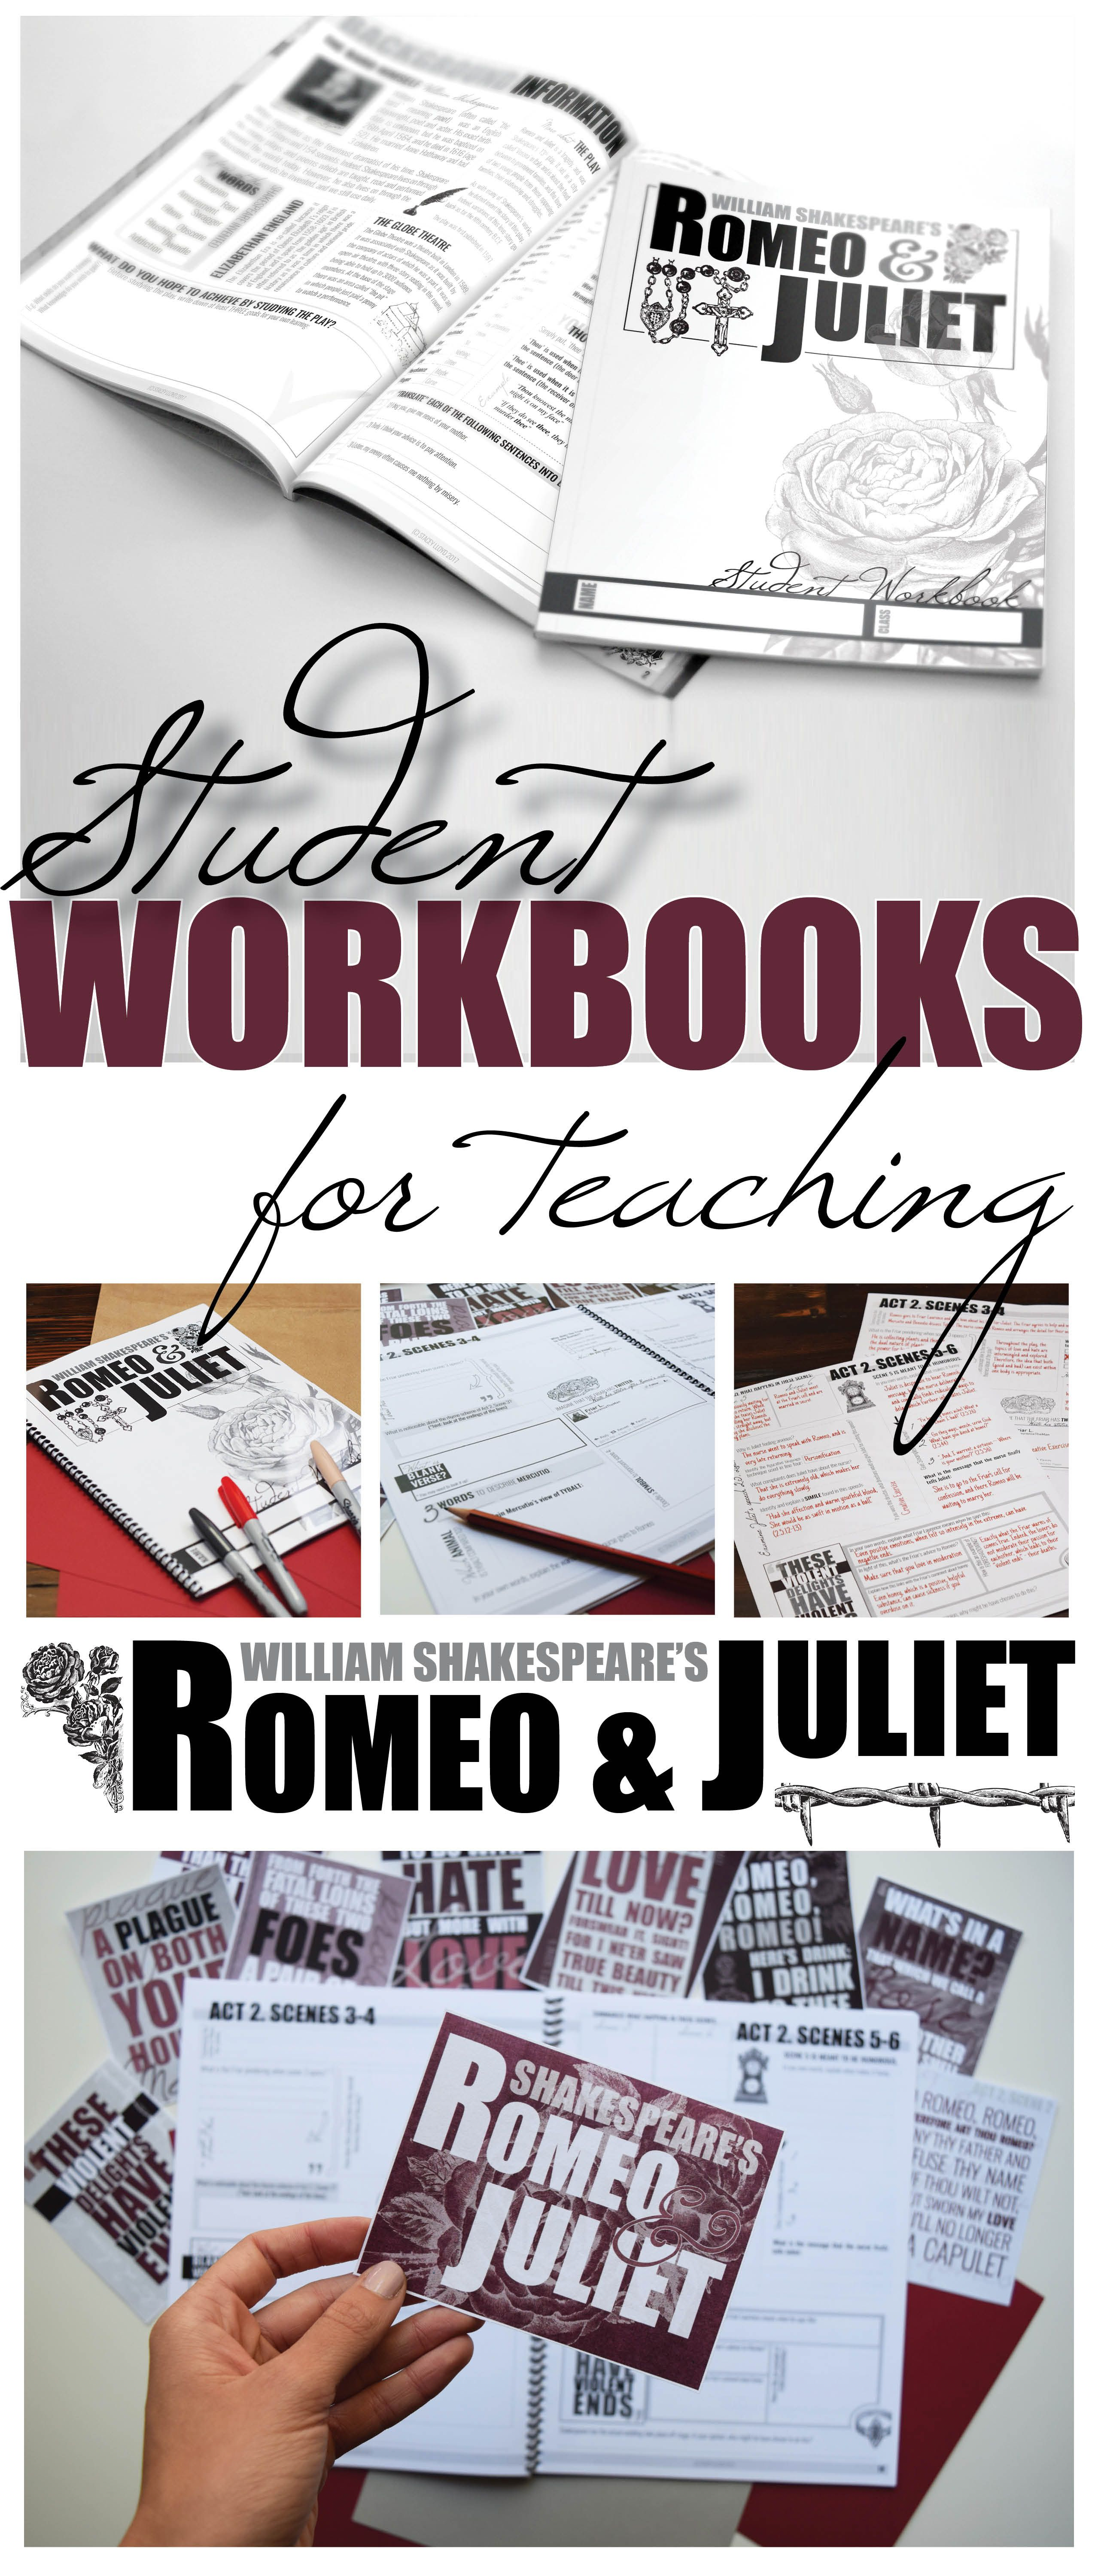 Romeo and Juliet} Student Workbooks | Teaching: Romeo and Juliet